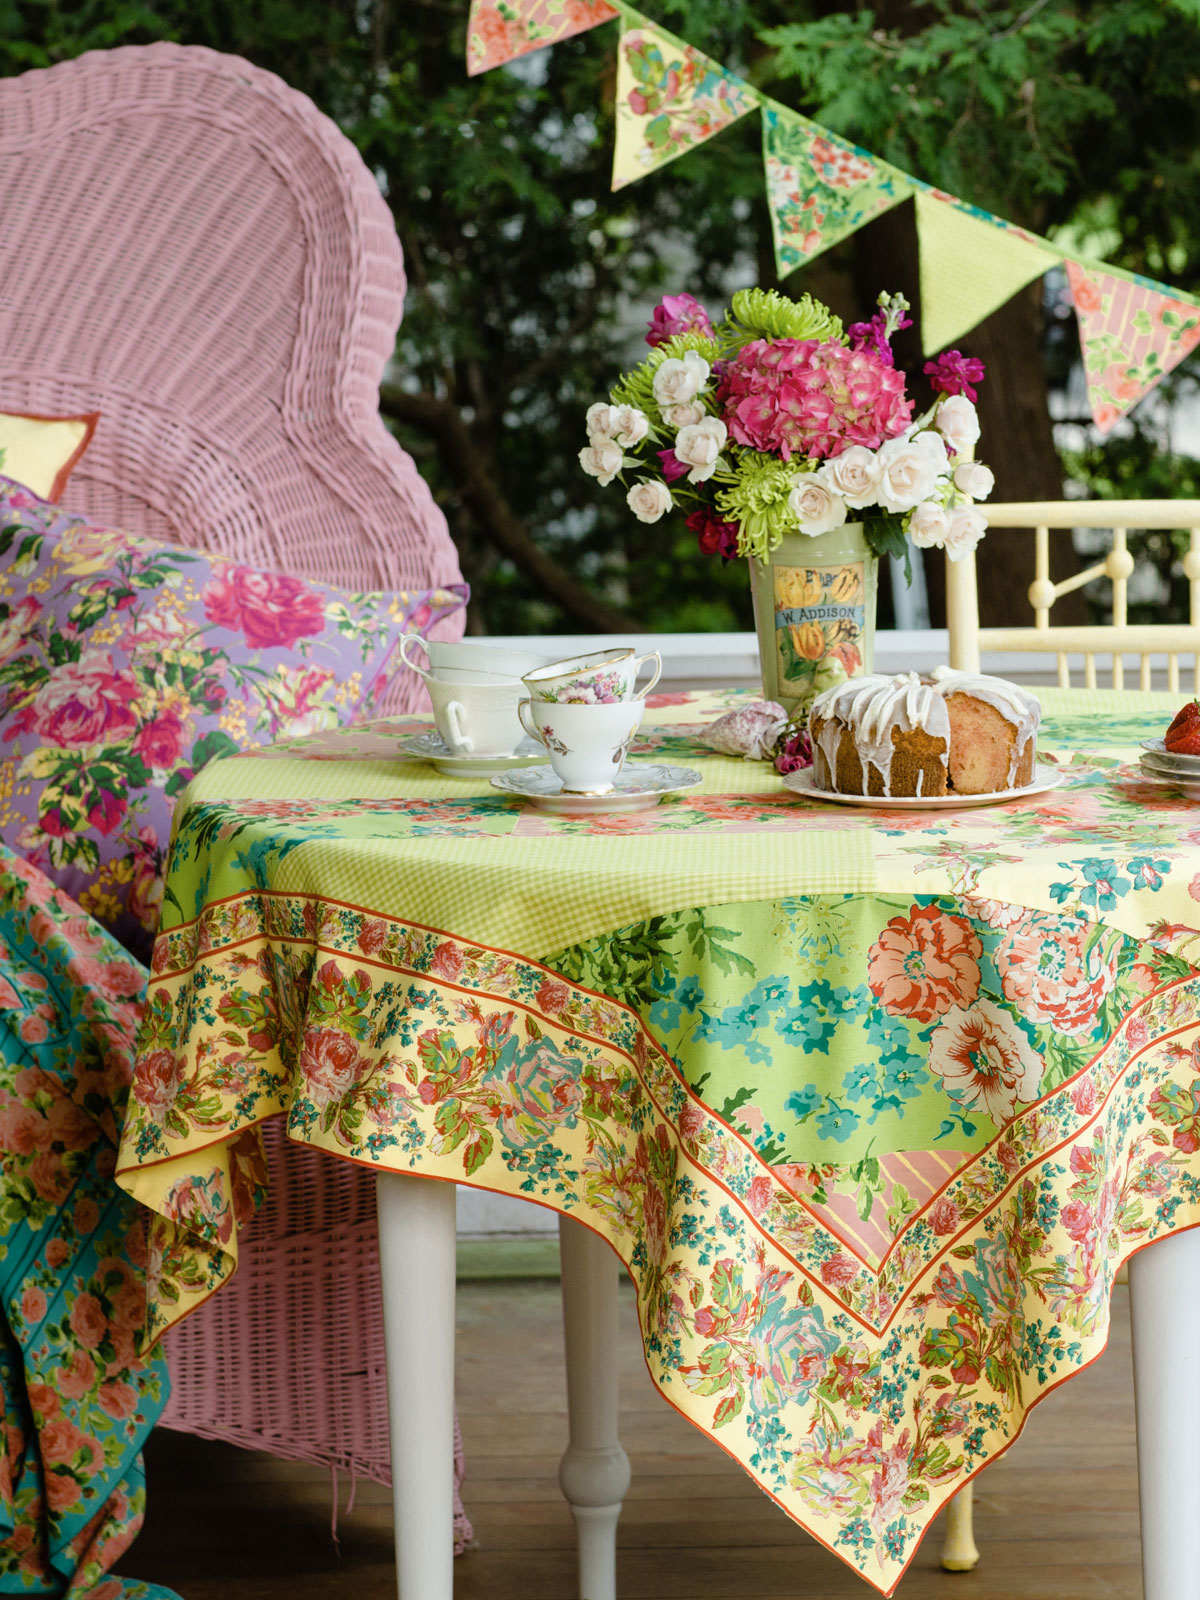 festival patchwork tablecloth attic sale linens kitchen attic beautiful designs by april. Black Bedroom Furniture Sets. Home Design Ideas